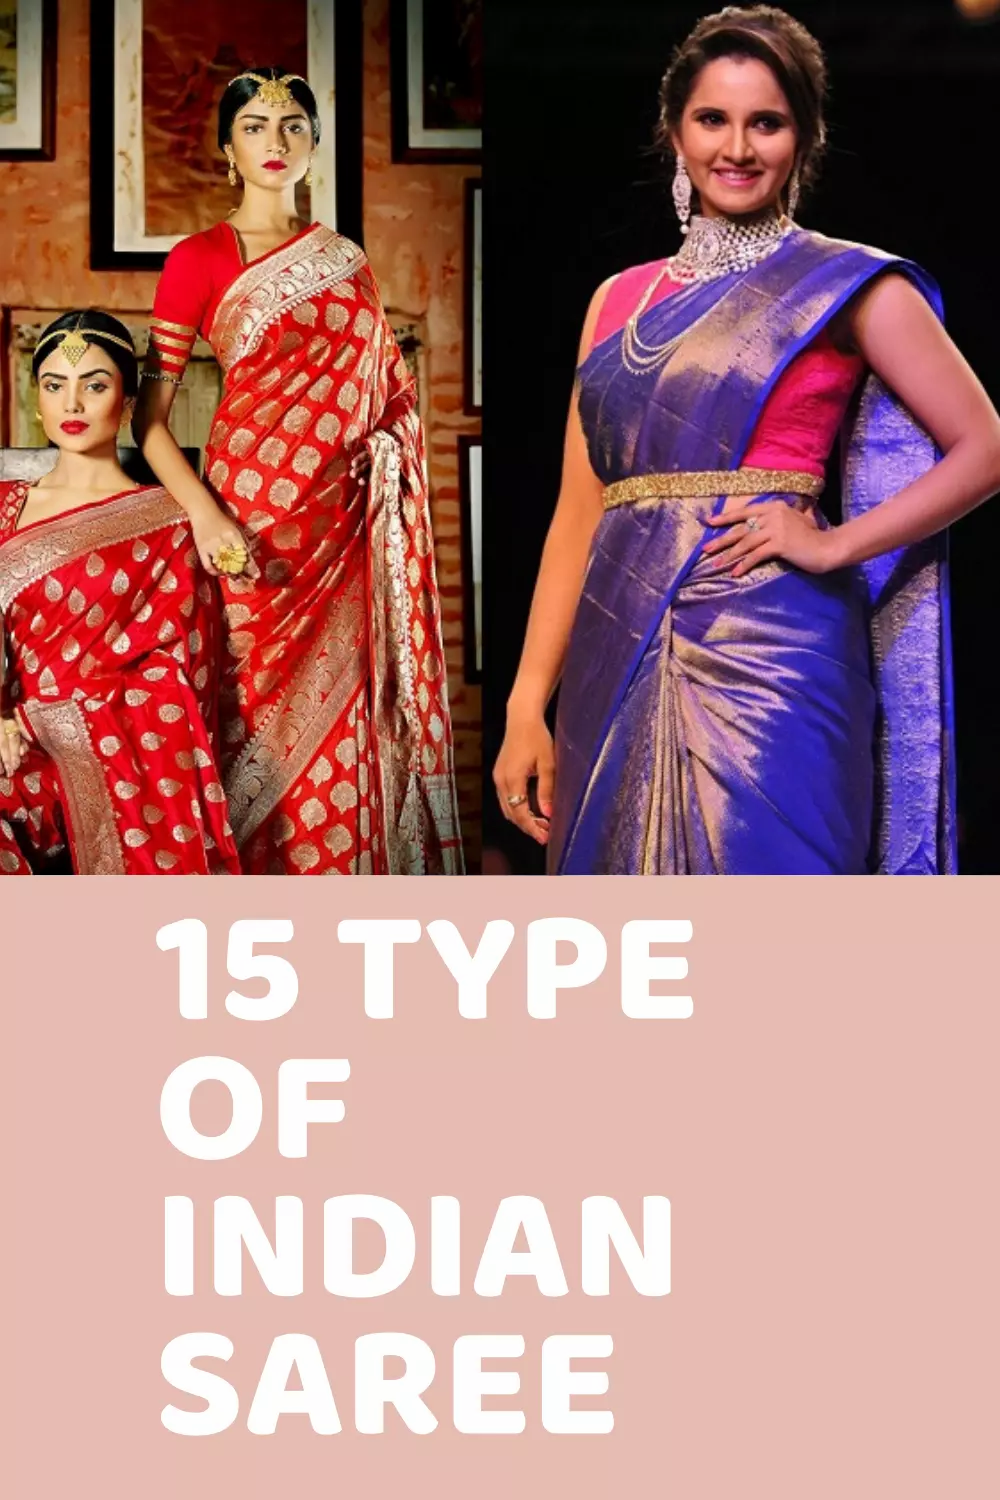 15 Types of Indian Saree